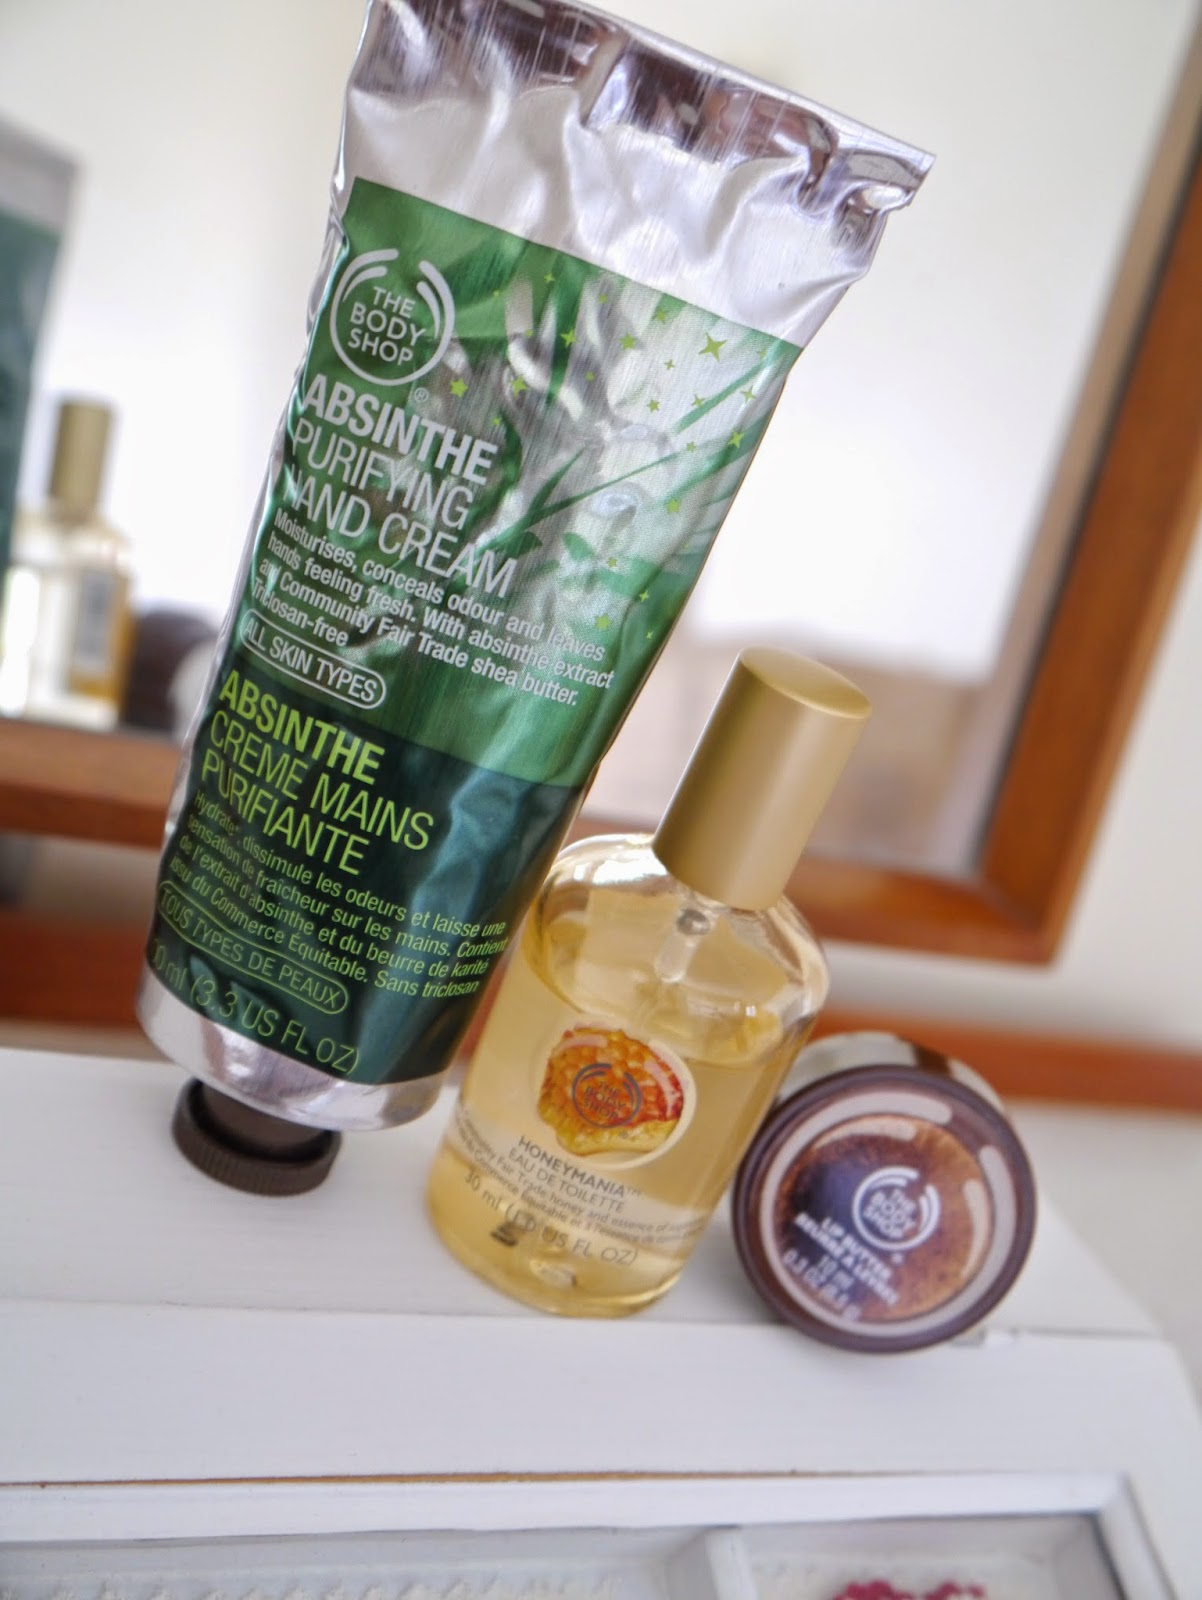 photo of Body Shop Honeymani Eau de Toilette, Body Shop Absinthe Purifying Hand Cream, Body Shop coconut lip butter